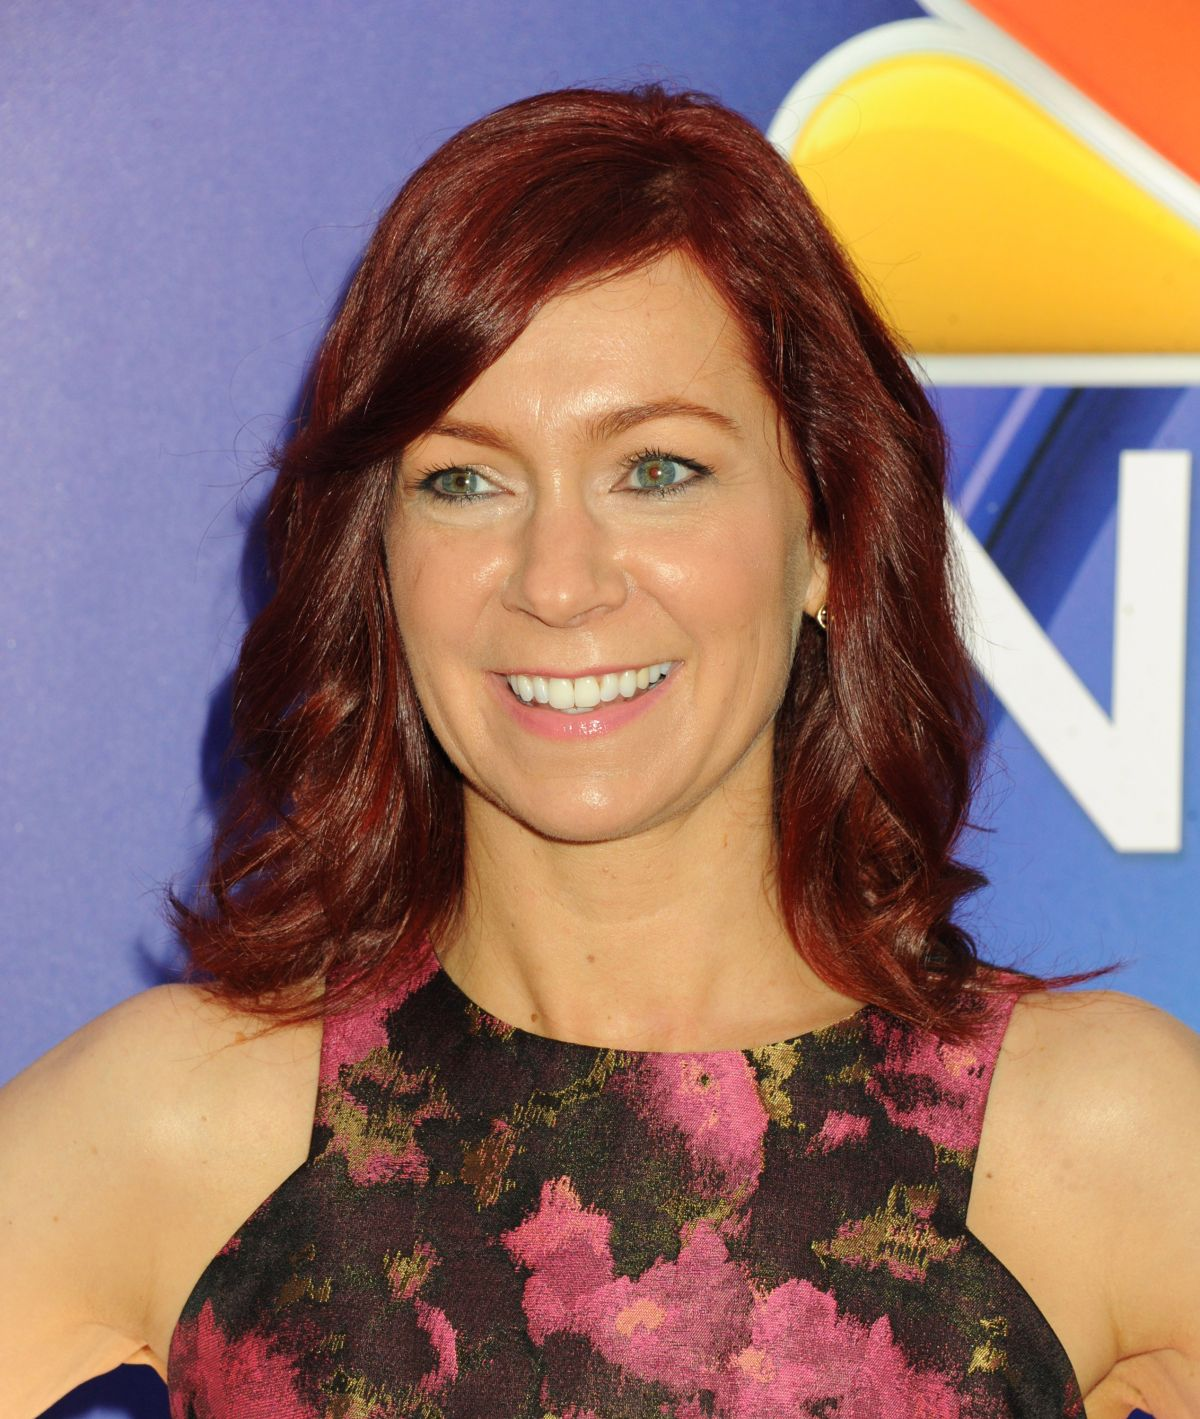 Carrie Preston At 2015 Nbc Upfront Presentation In New York2